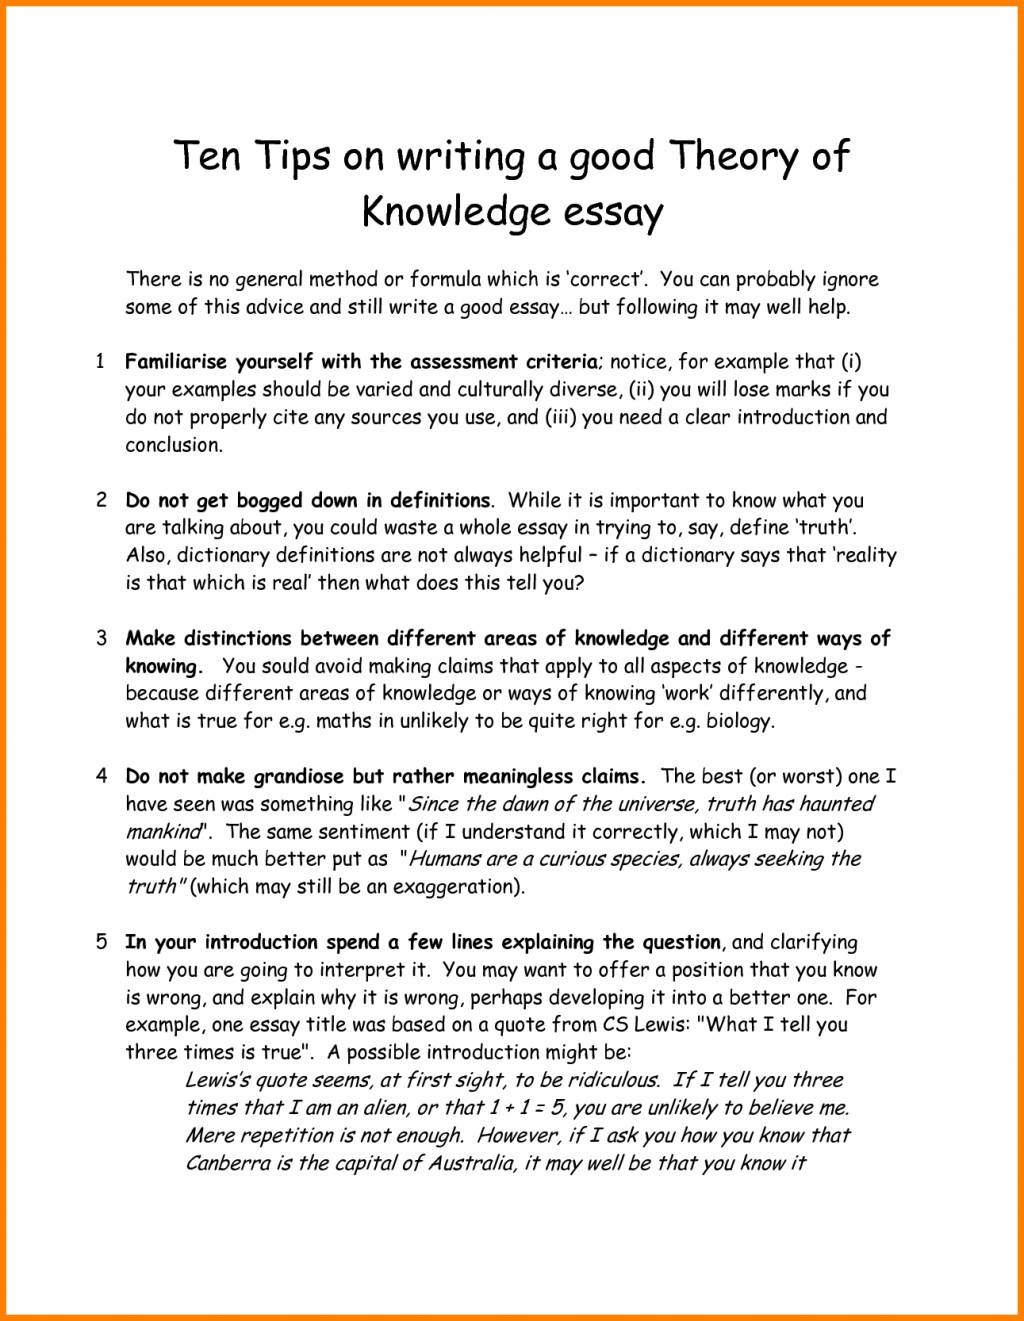 001 Essay Example Good Ways To Start An English The Paragraph How Observation Examples Off About Yourself Ledger Pa Informative Writing Analysis Conclusion Fascinating Funny Introduction A Book University Large